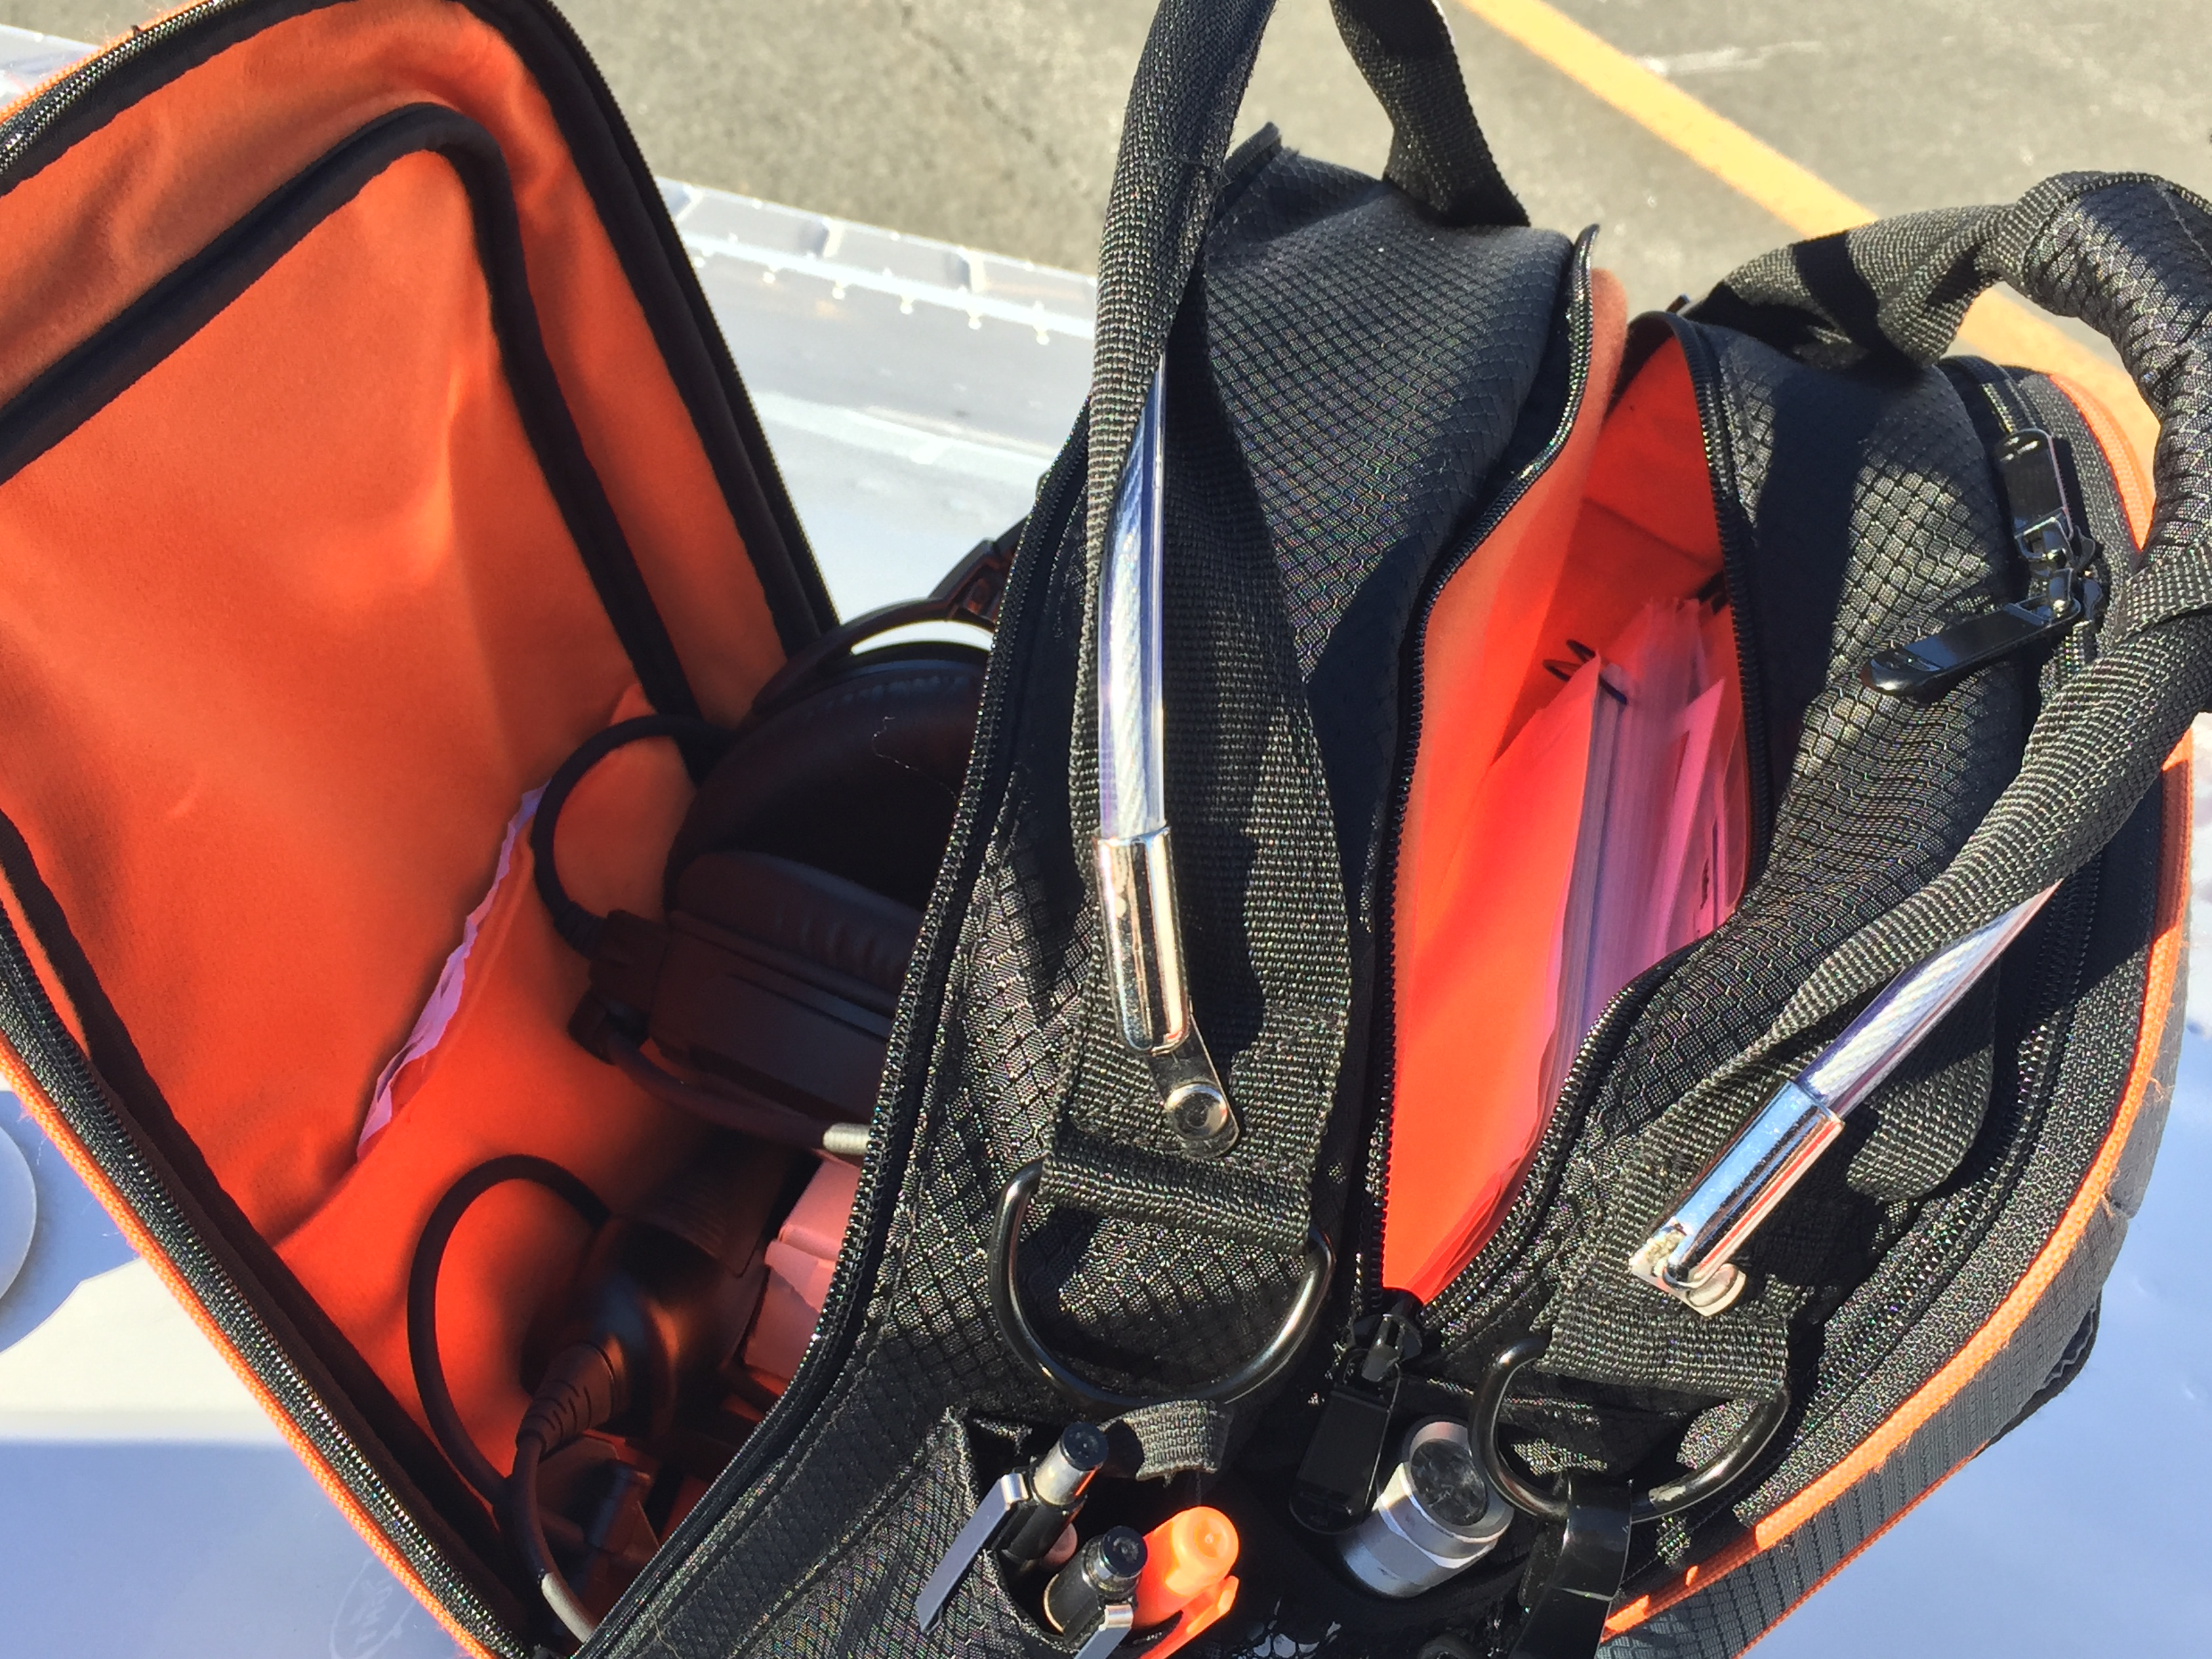 c0eef7cb3 The Lift Flight Bag By Flight Outfitters Explored | Review Before Flight